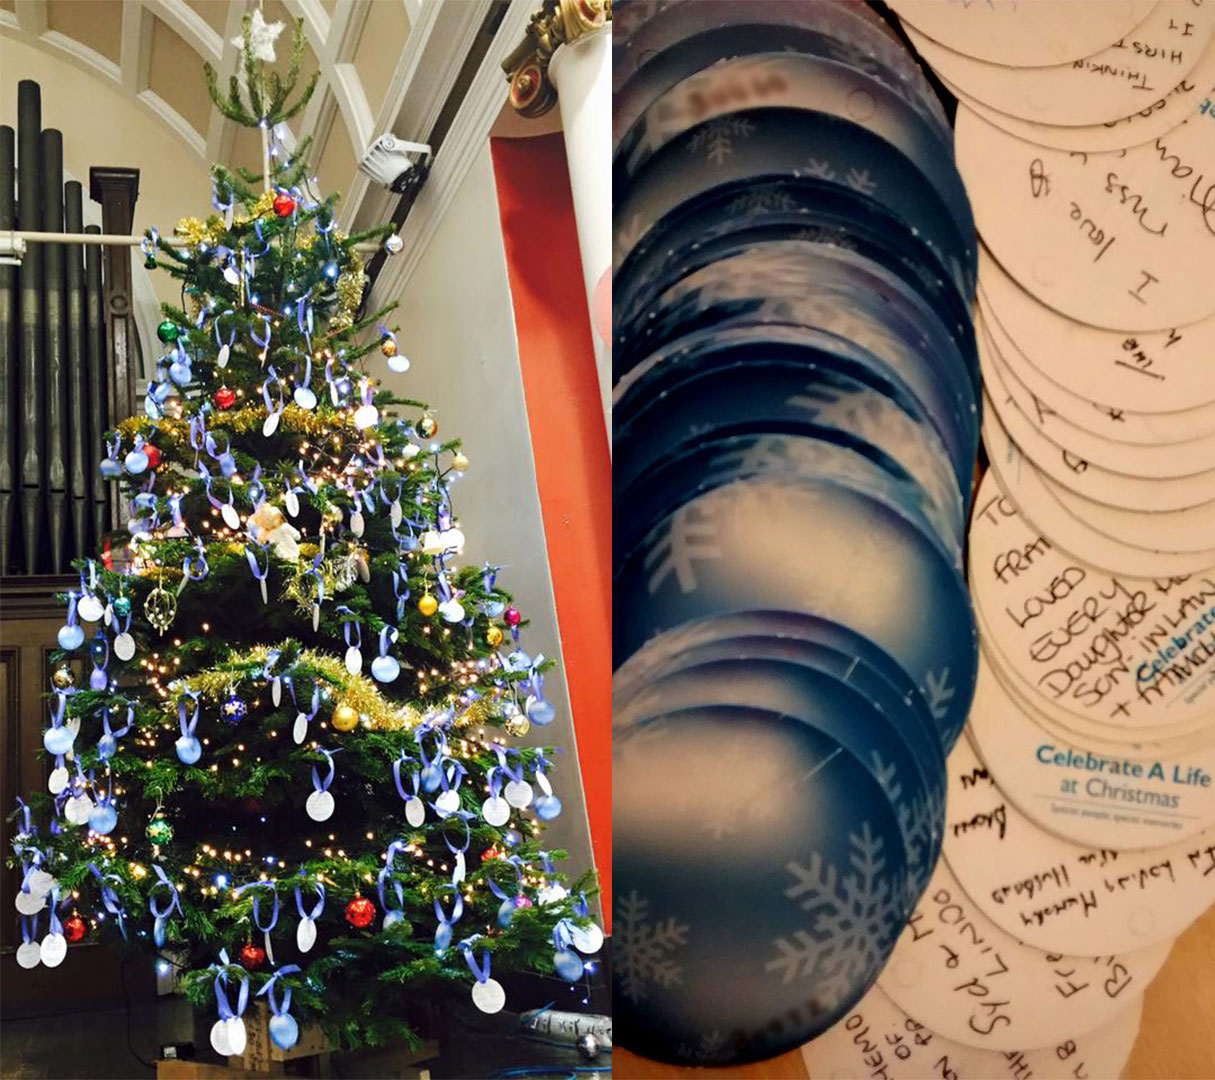 Image shows a Christmas tree decorated with bright blue tags featuring the names of loved ones who have lost their lives to lung cancer.